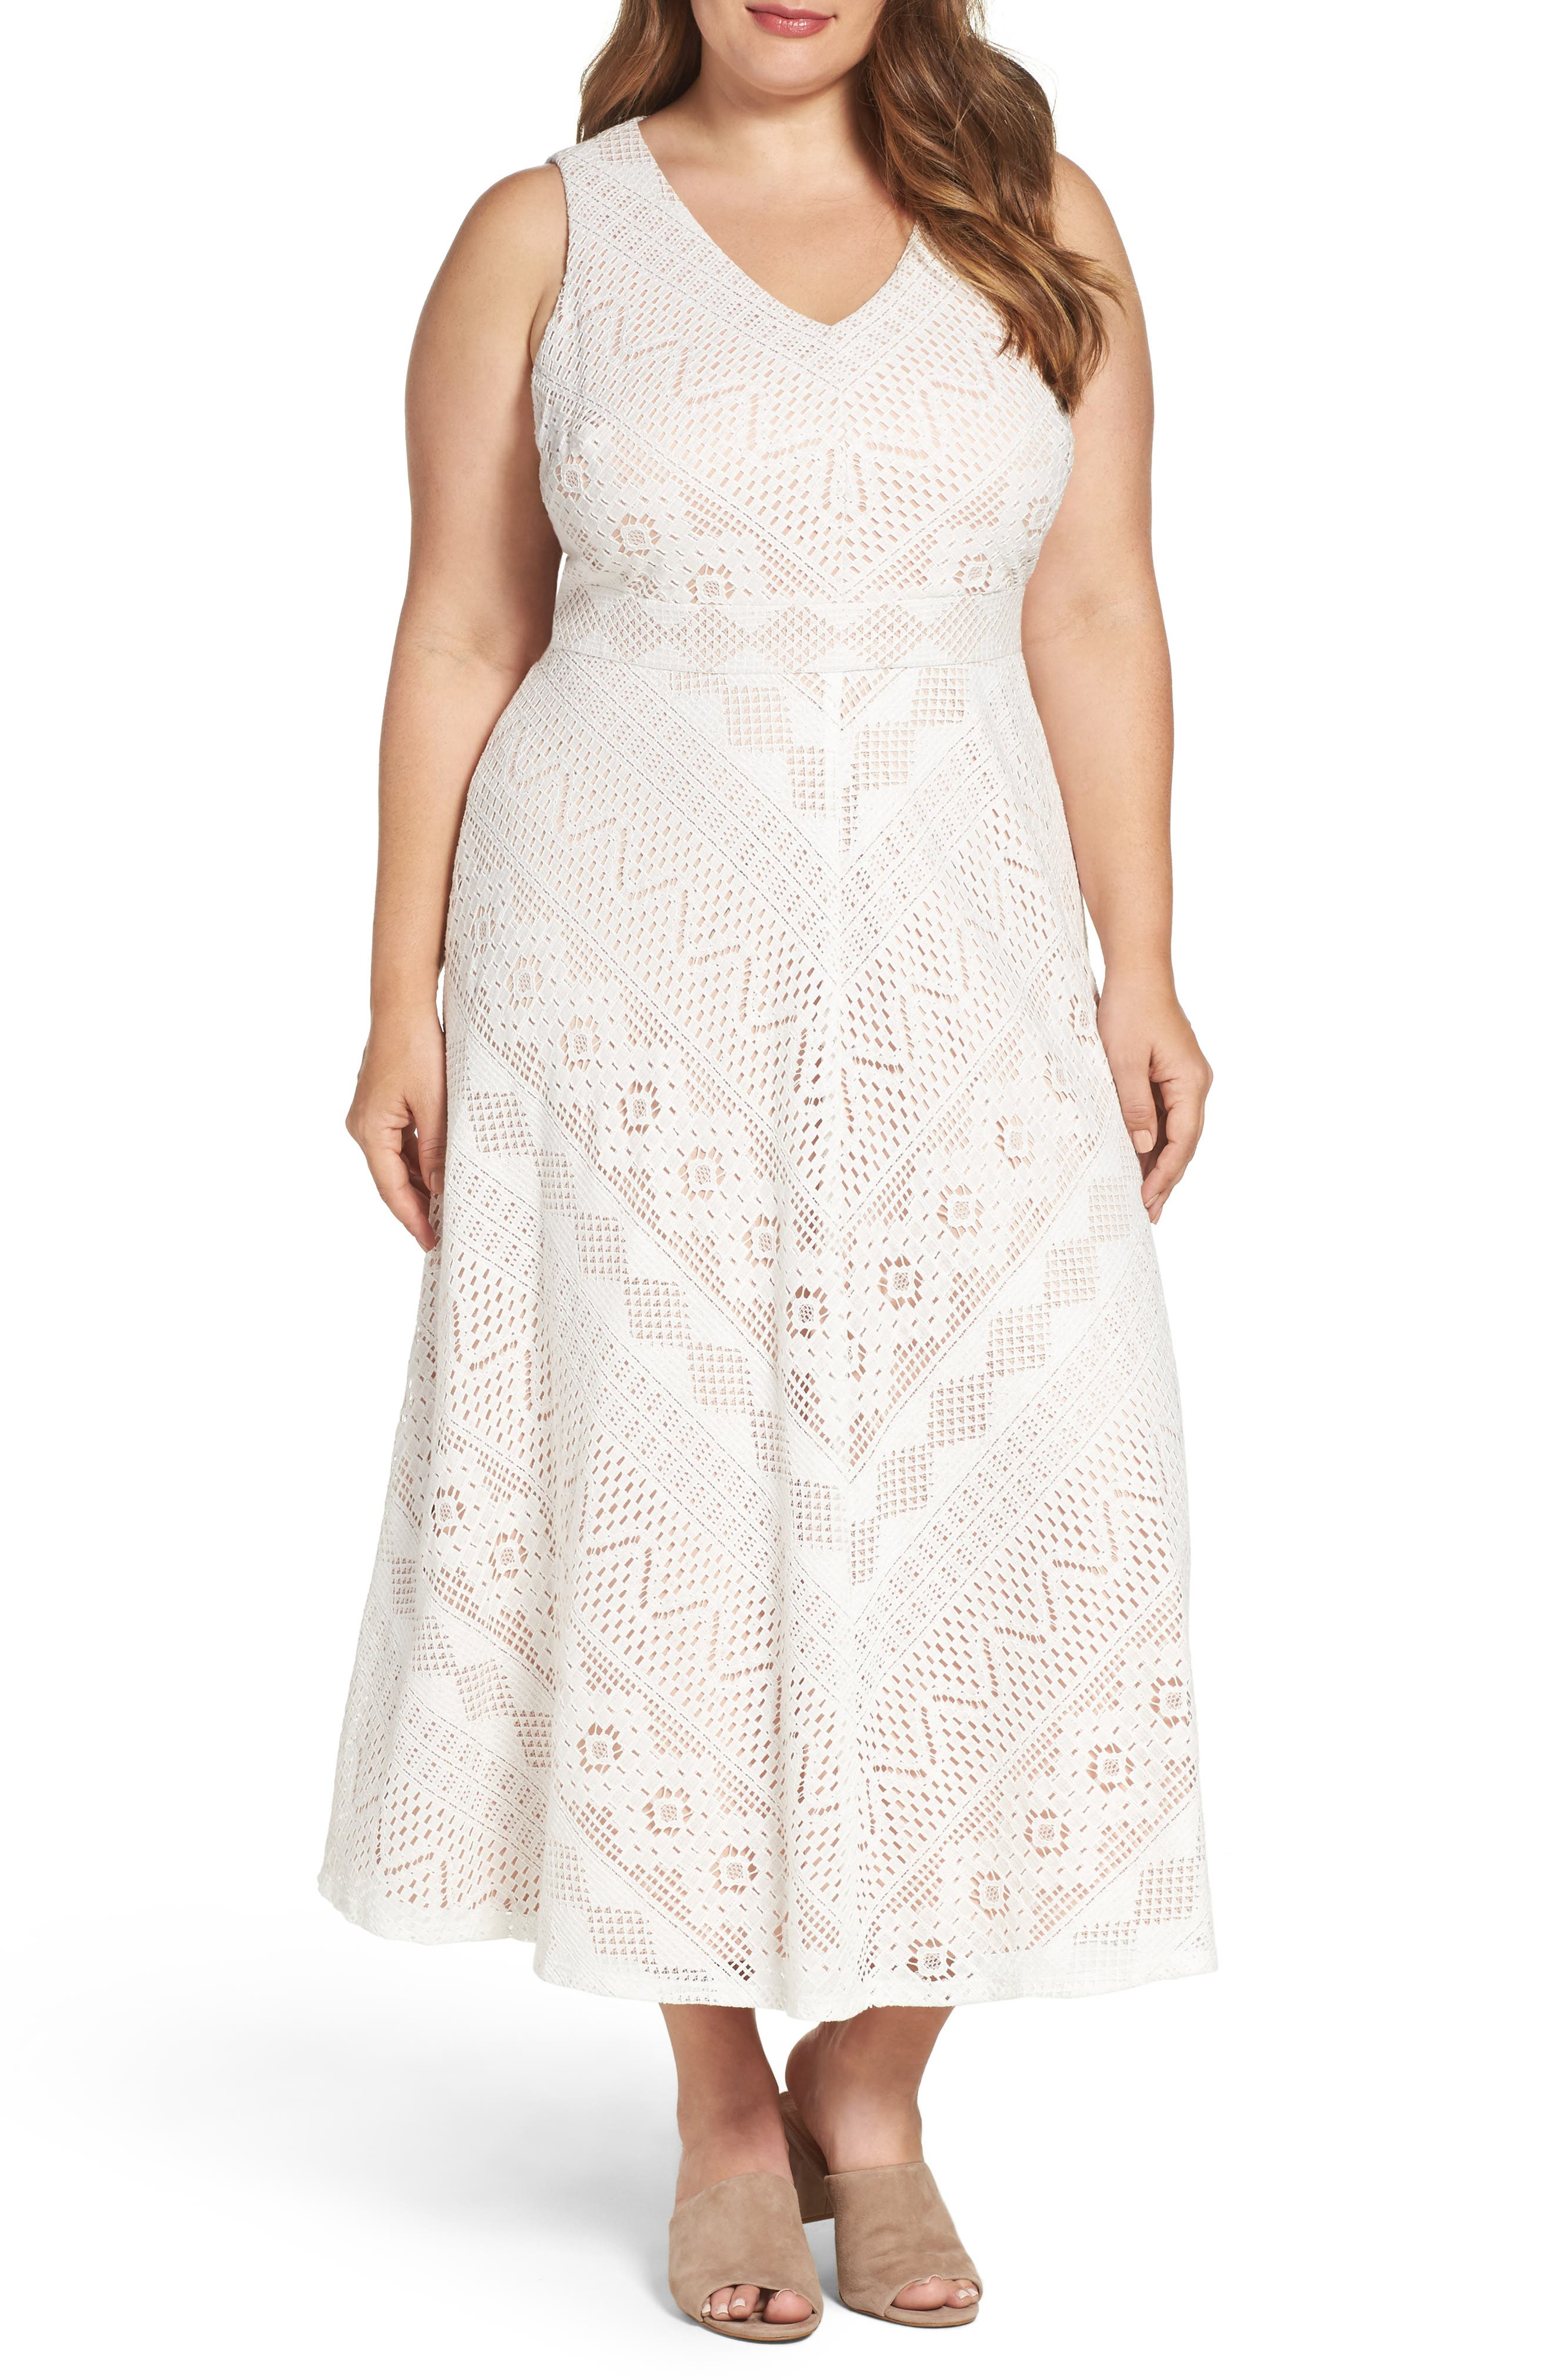 Vince Camuto Mitered Lace Midi Dress (Plus Size)